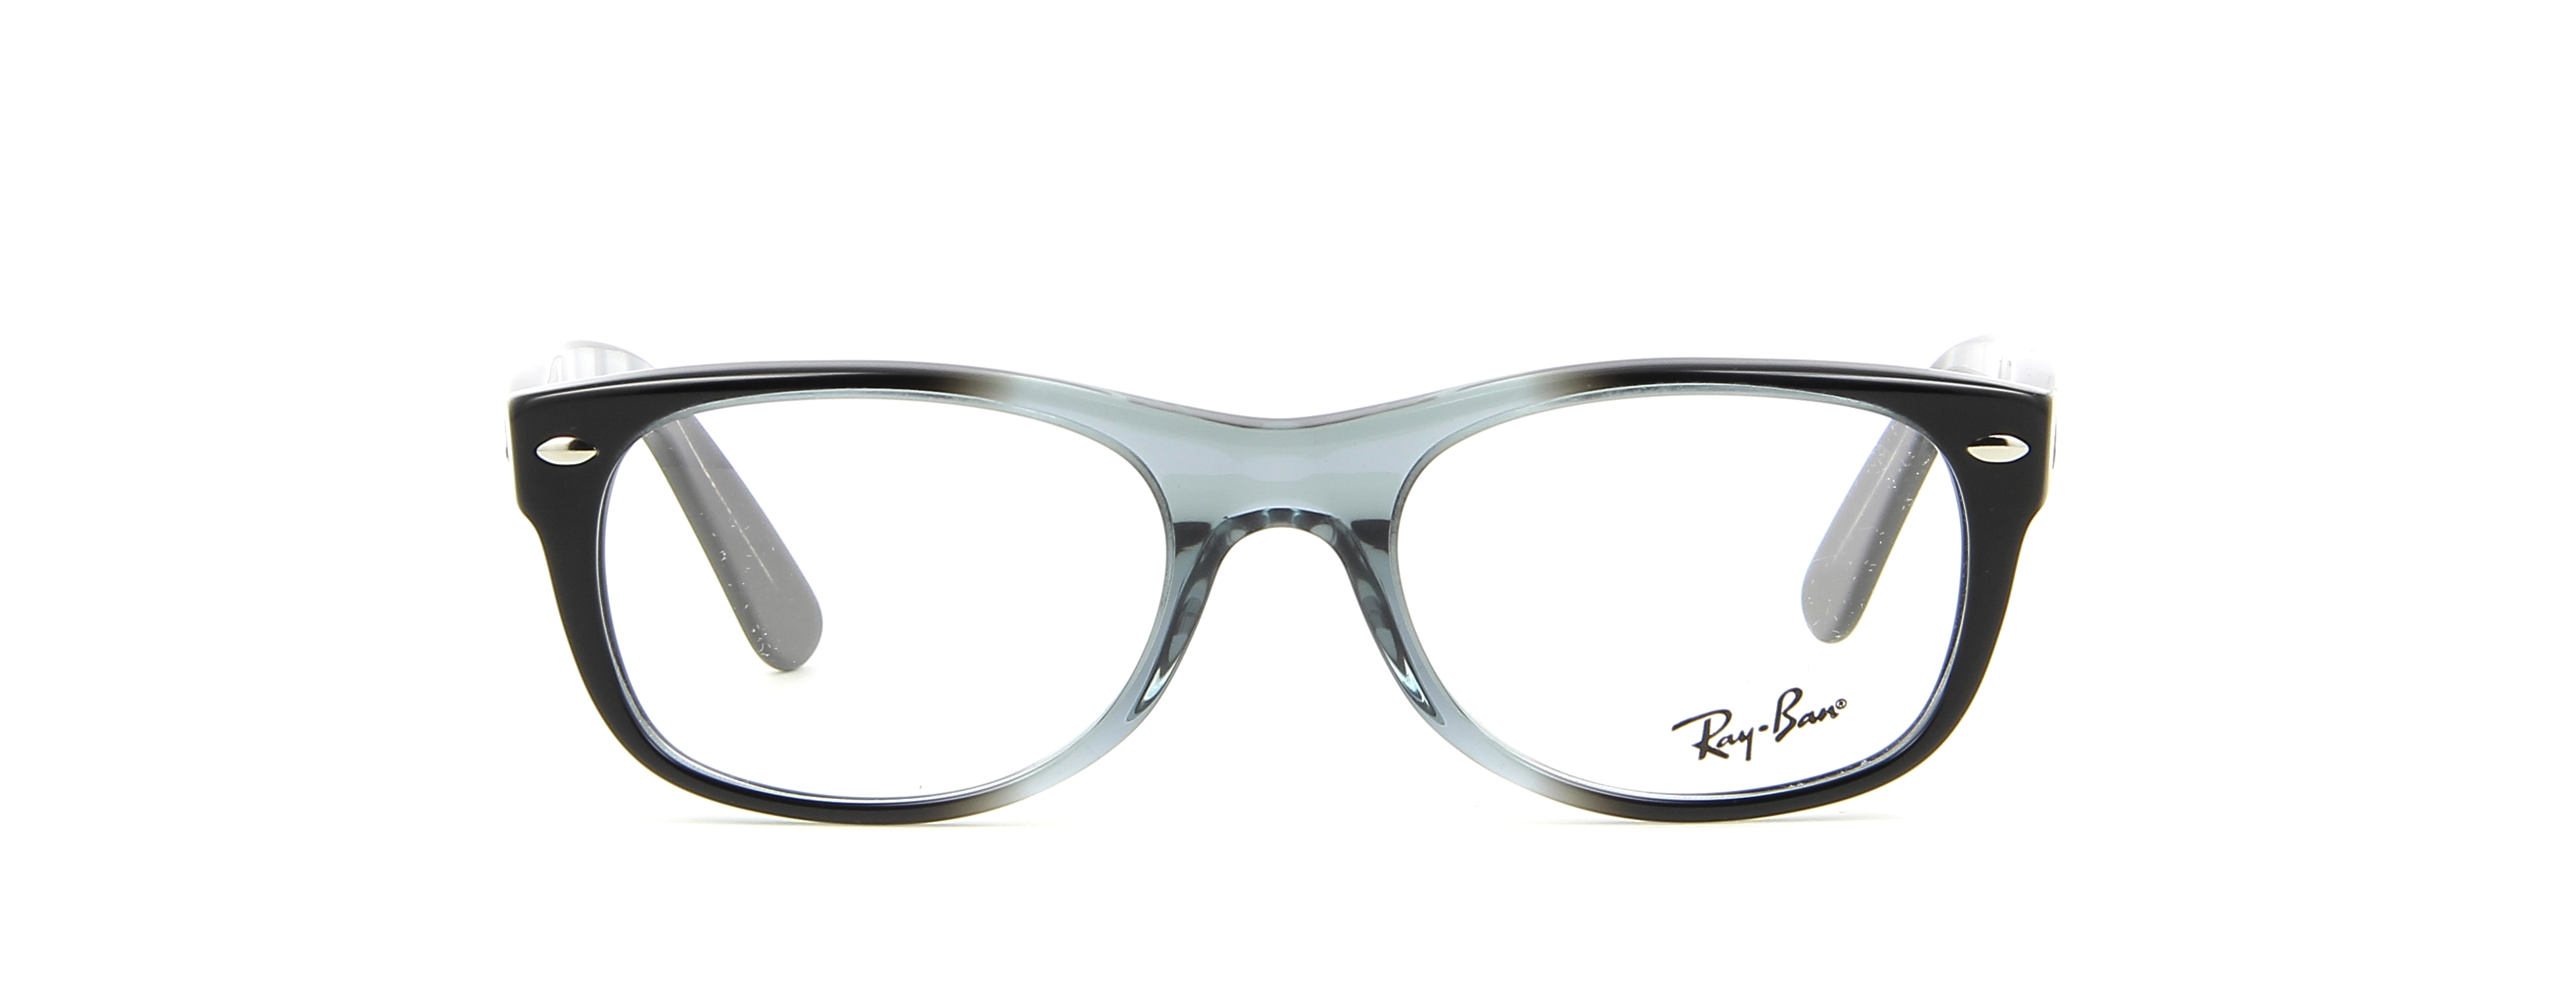 ray ban new wayfarer 2132 optical center